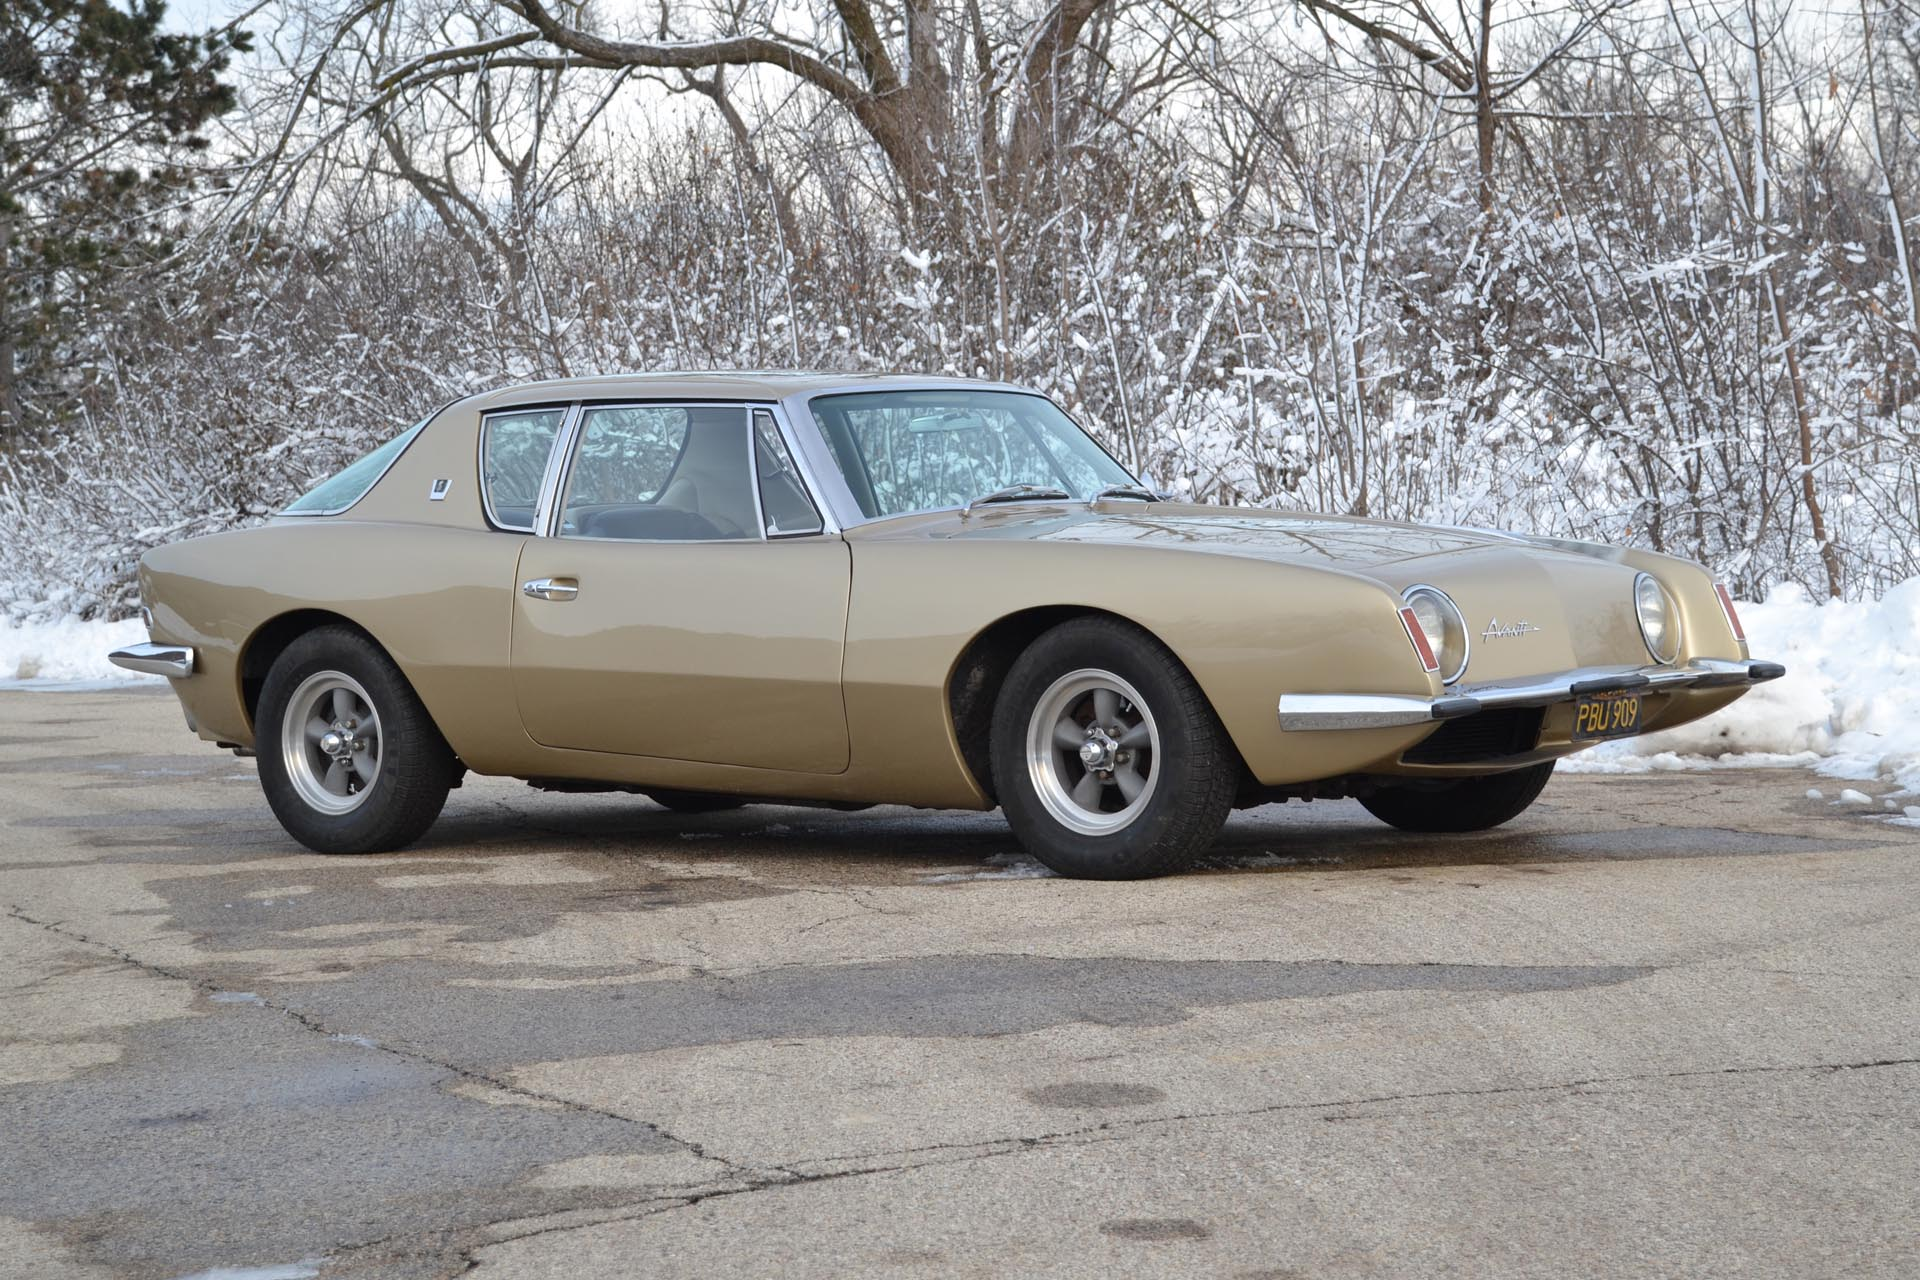 1963 Studebaker Avanti R2 Supercharged Coupe